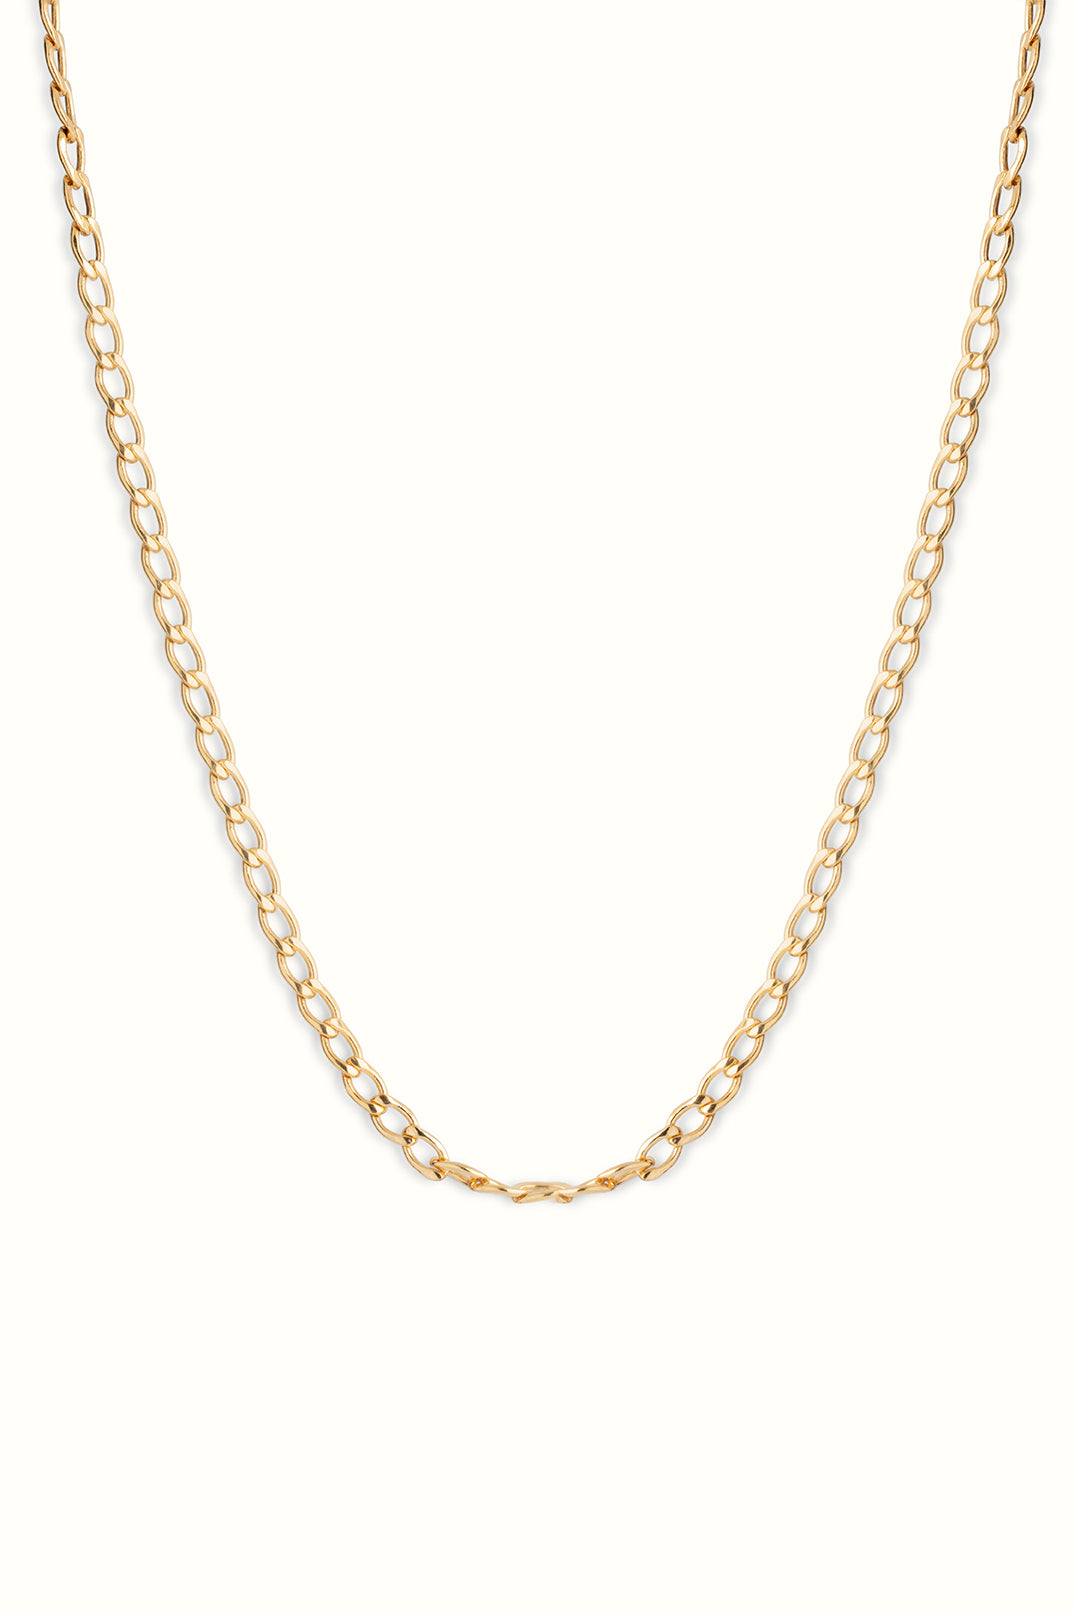 a close up photo of a gold filled chunky curb chain necklace hanging in front of a white background